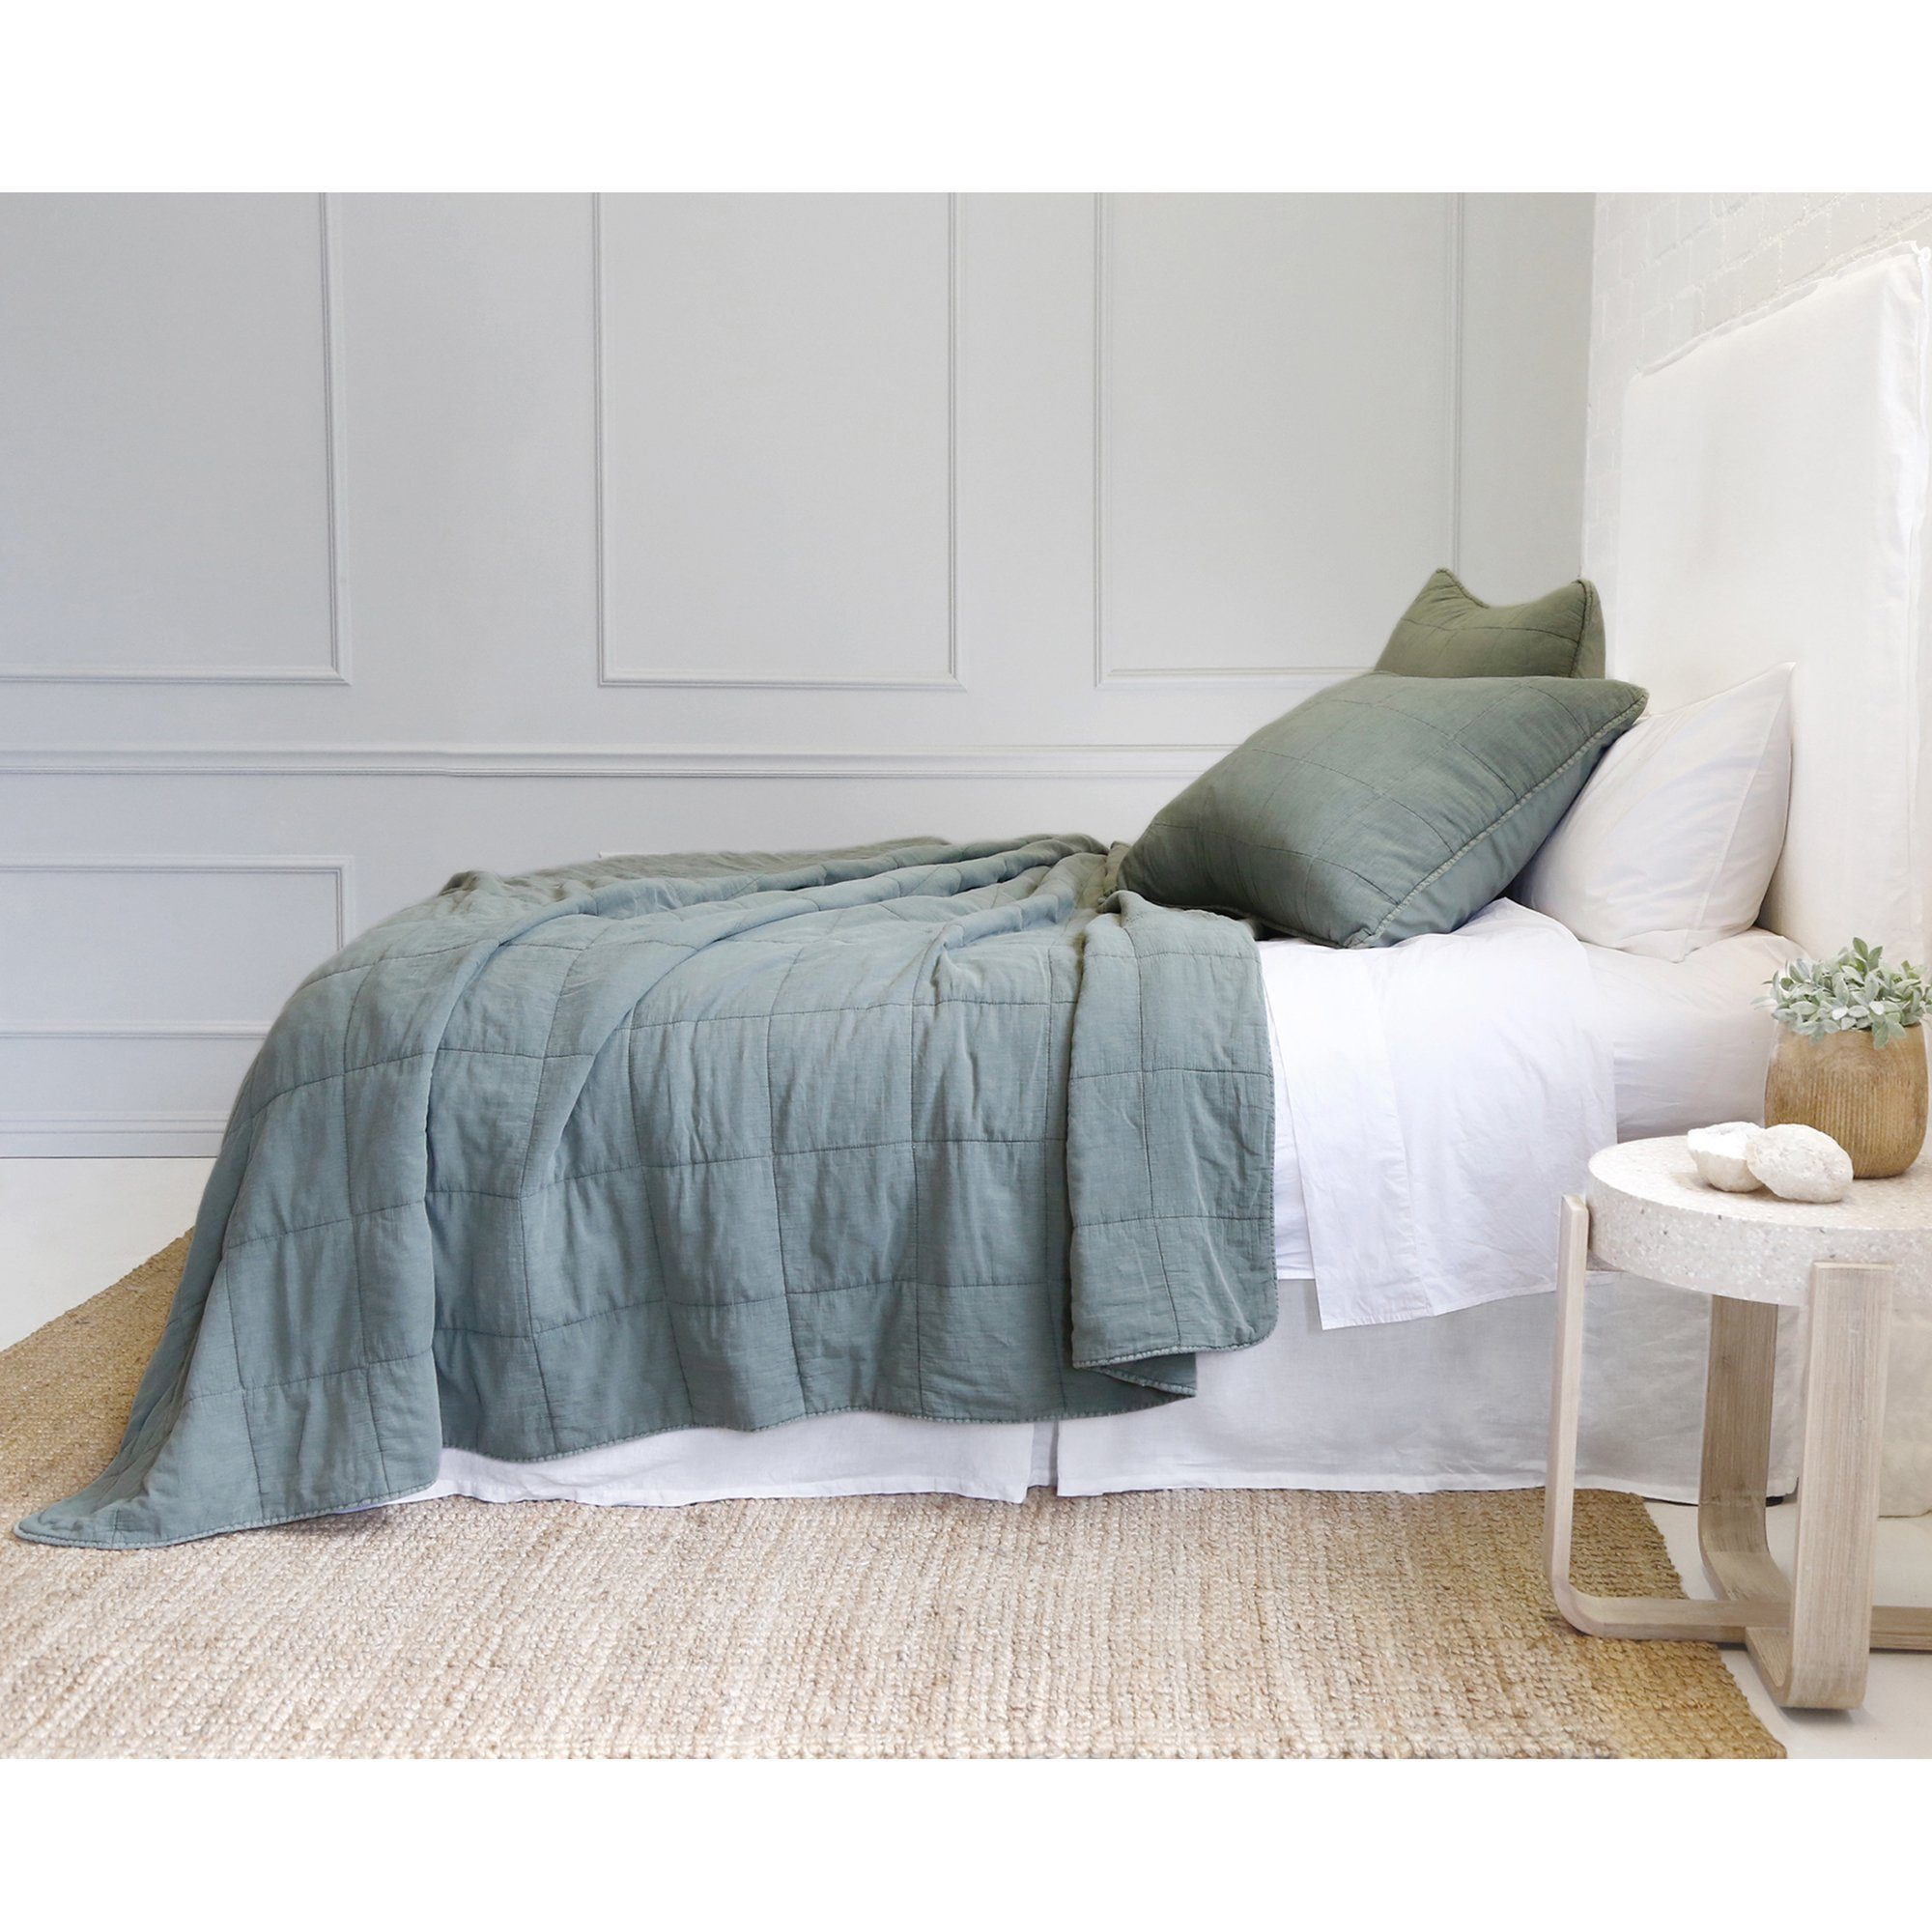 Fig Linens - Pom Pom at Home Bedding - Antwerp Moss Green Coverlet